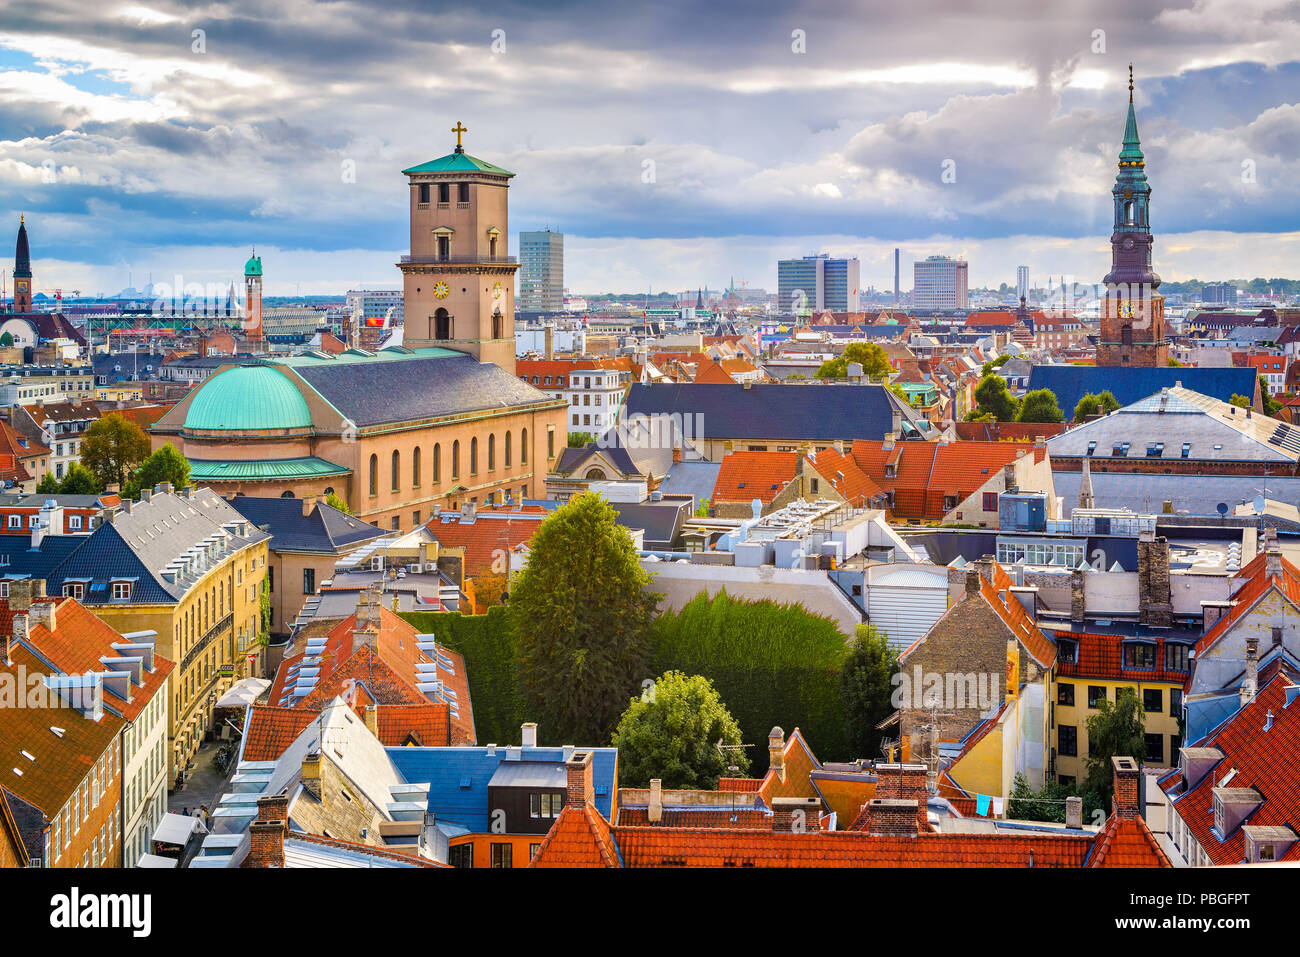 Copenhagen, Denmark old city skyline. Stock Photo